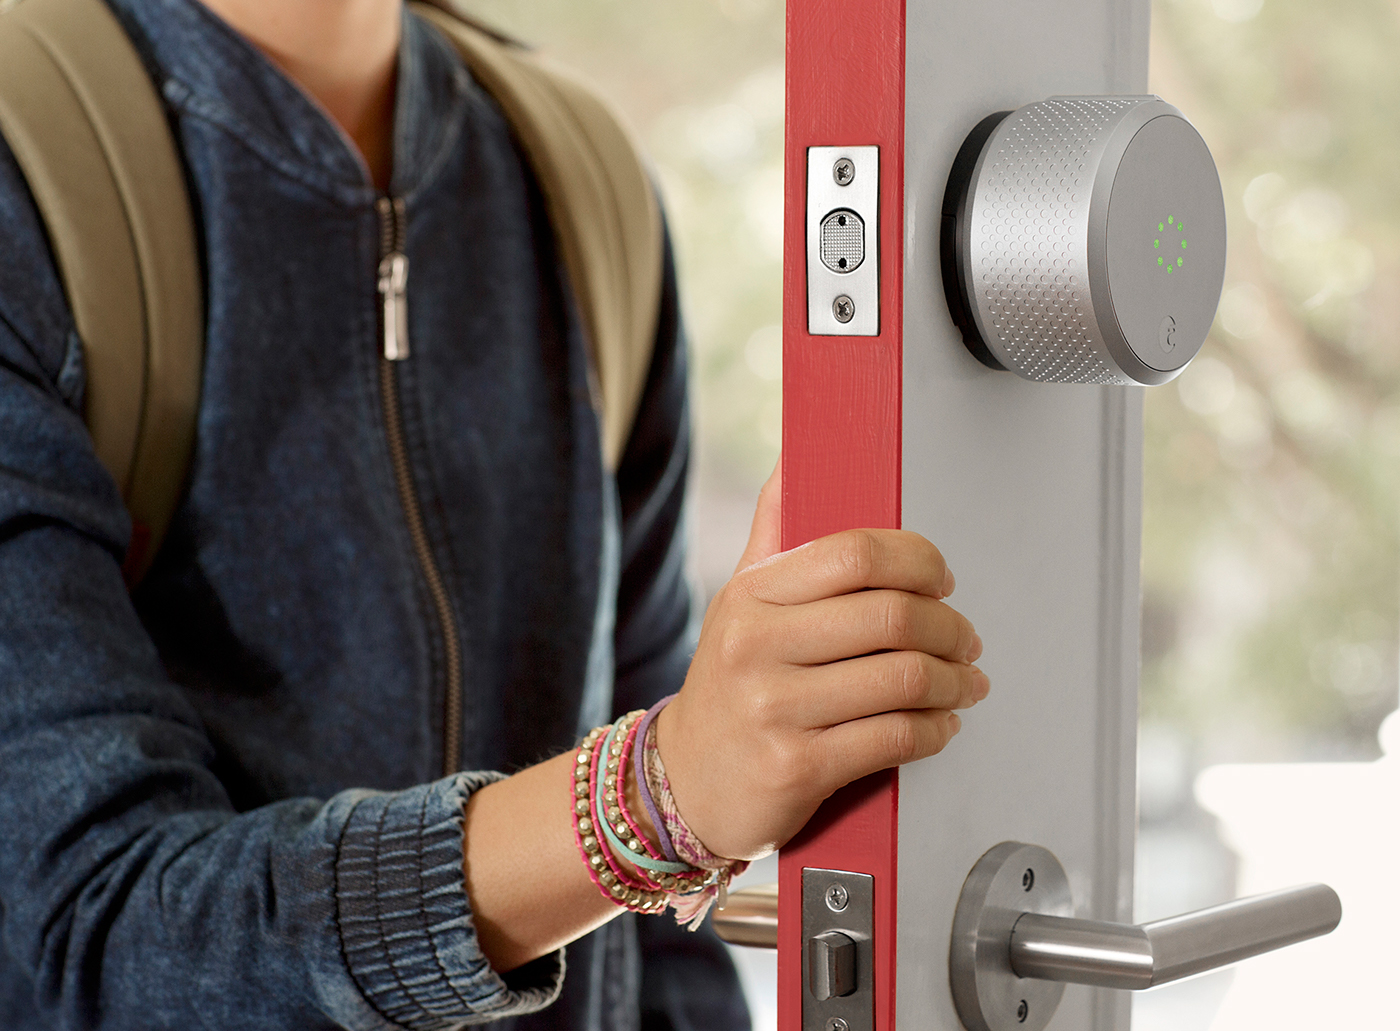 August Smart Lock by August